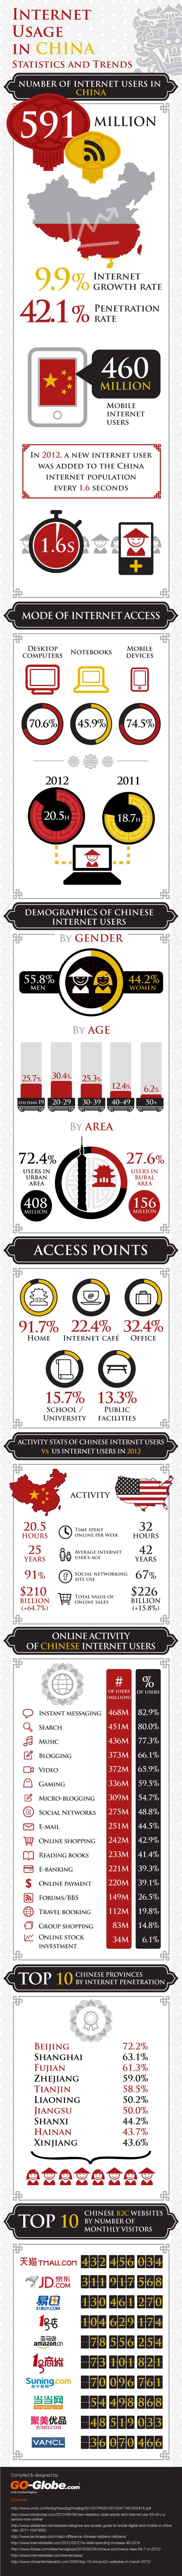 China's Web Behind The Wall - vital stats and numbers